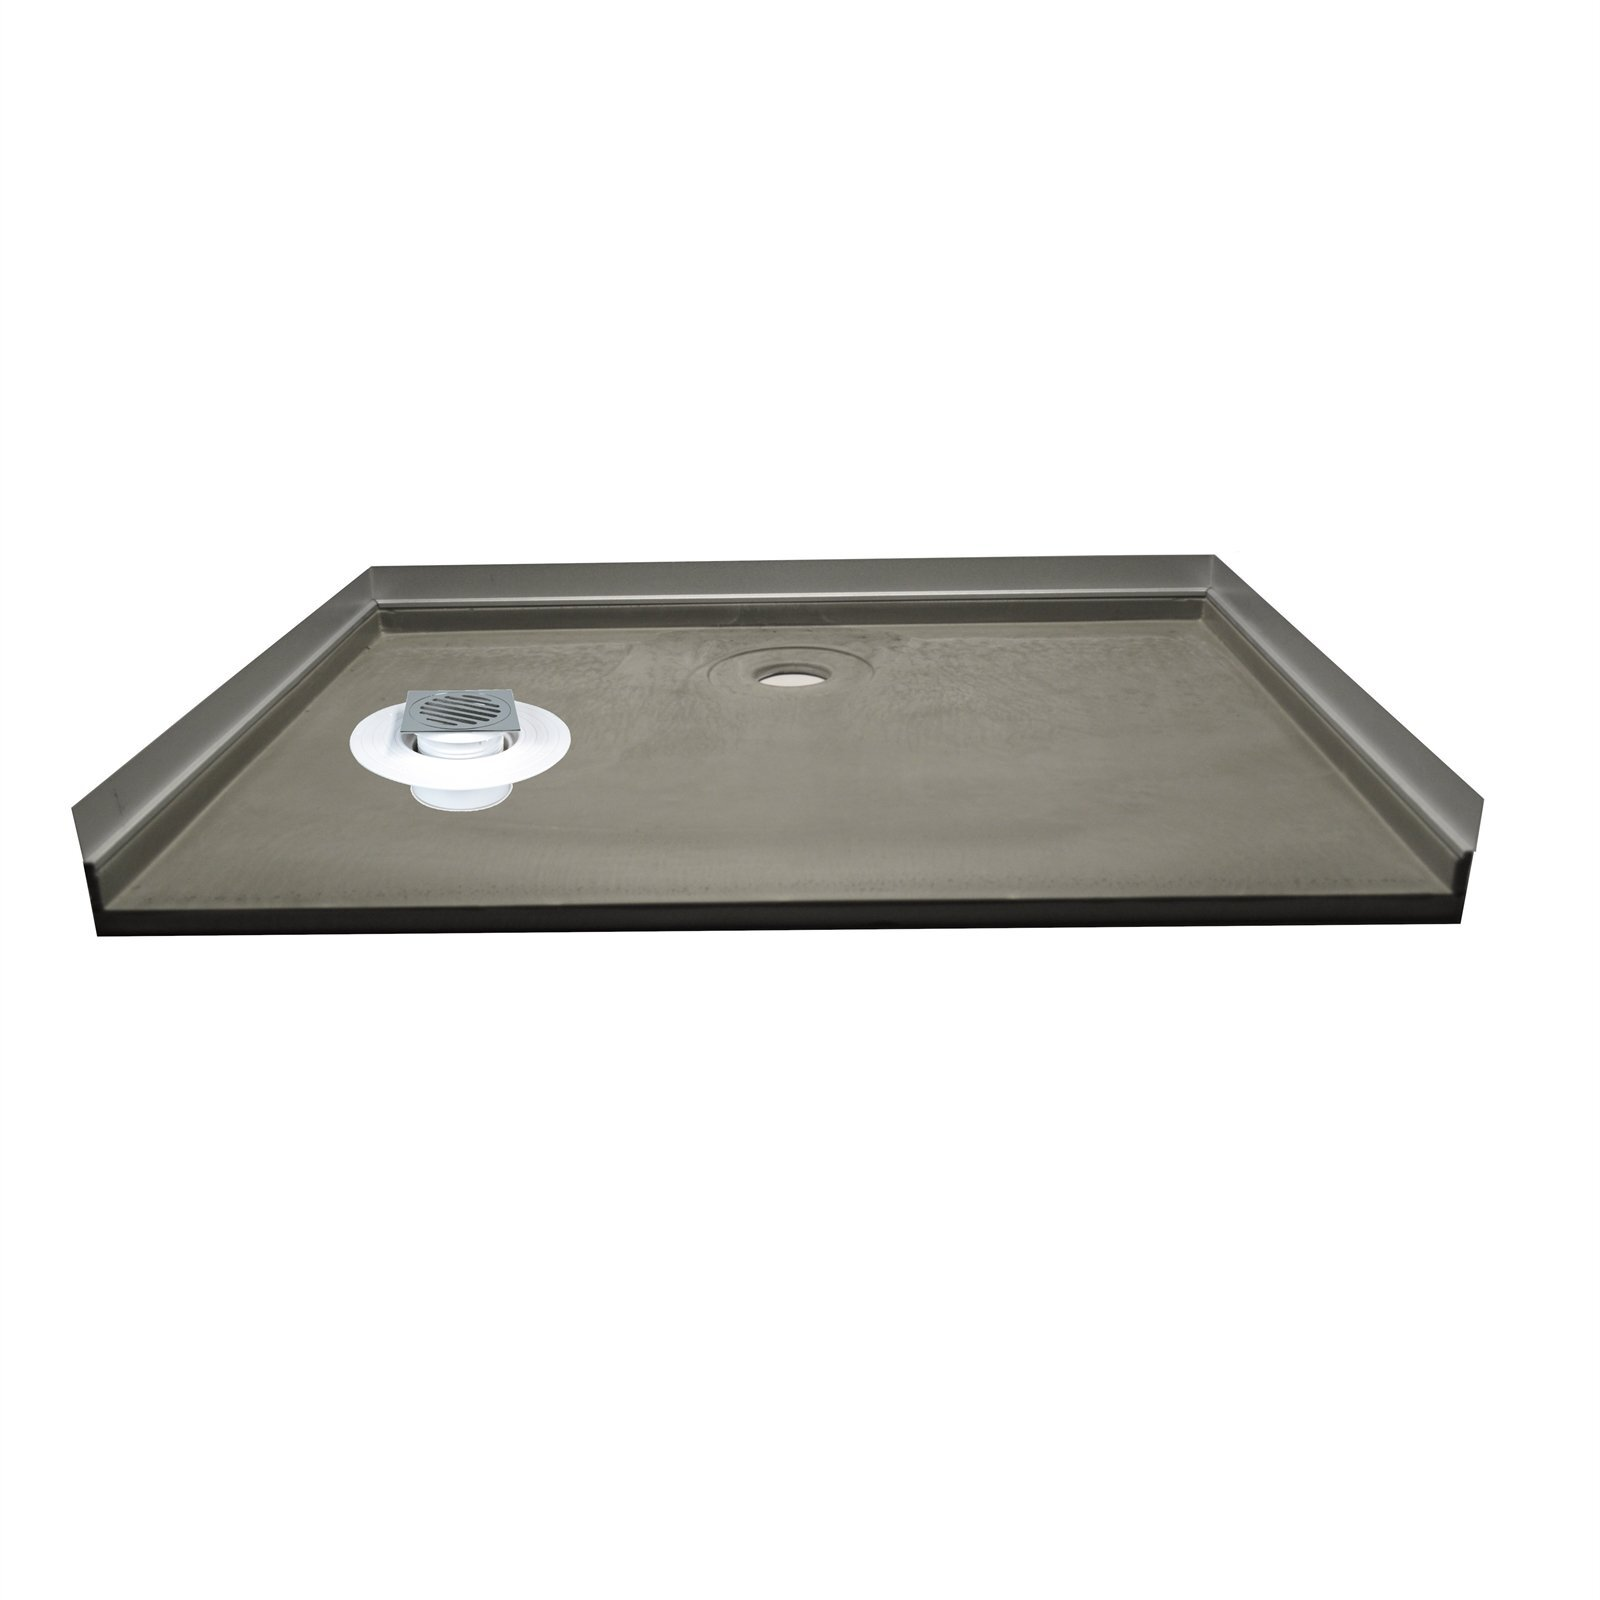 wet area solutions 1200 x 900mm rear outlet 3 sided shower tile over tray